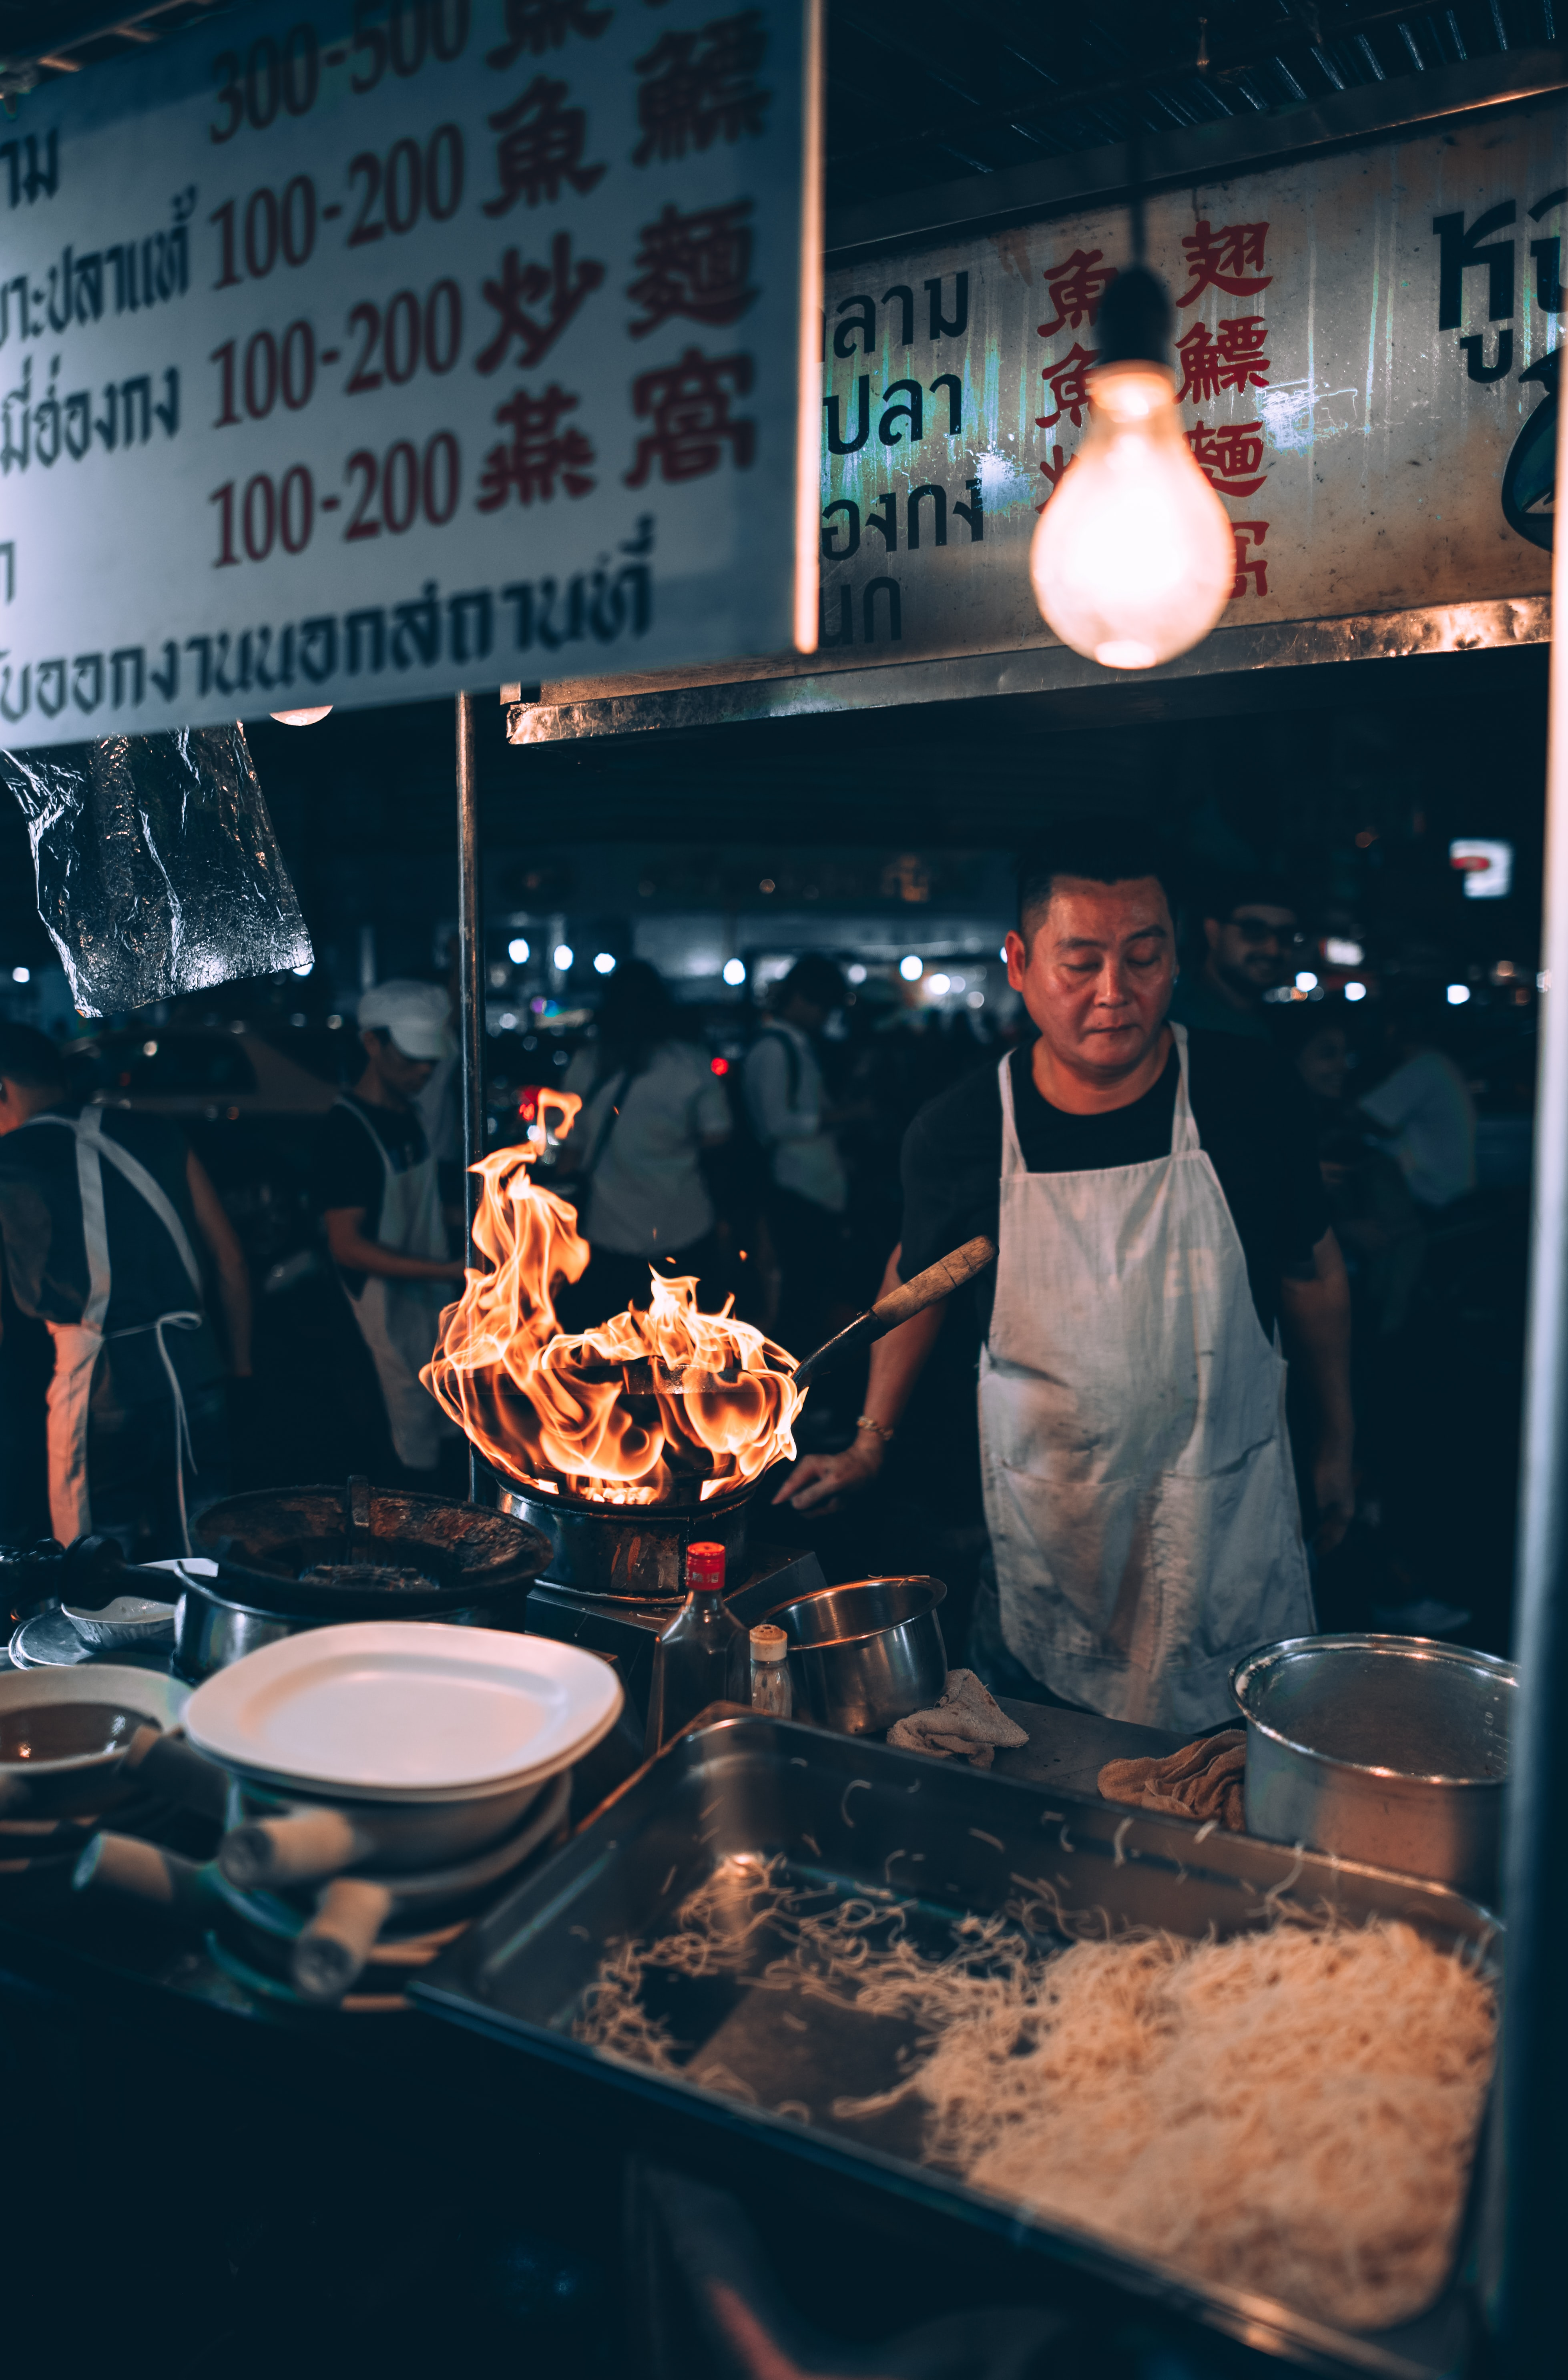 man cooking front of food stall